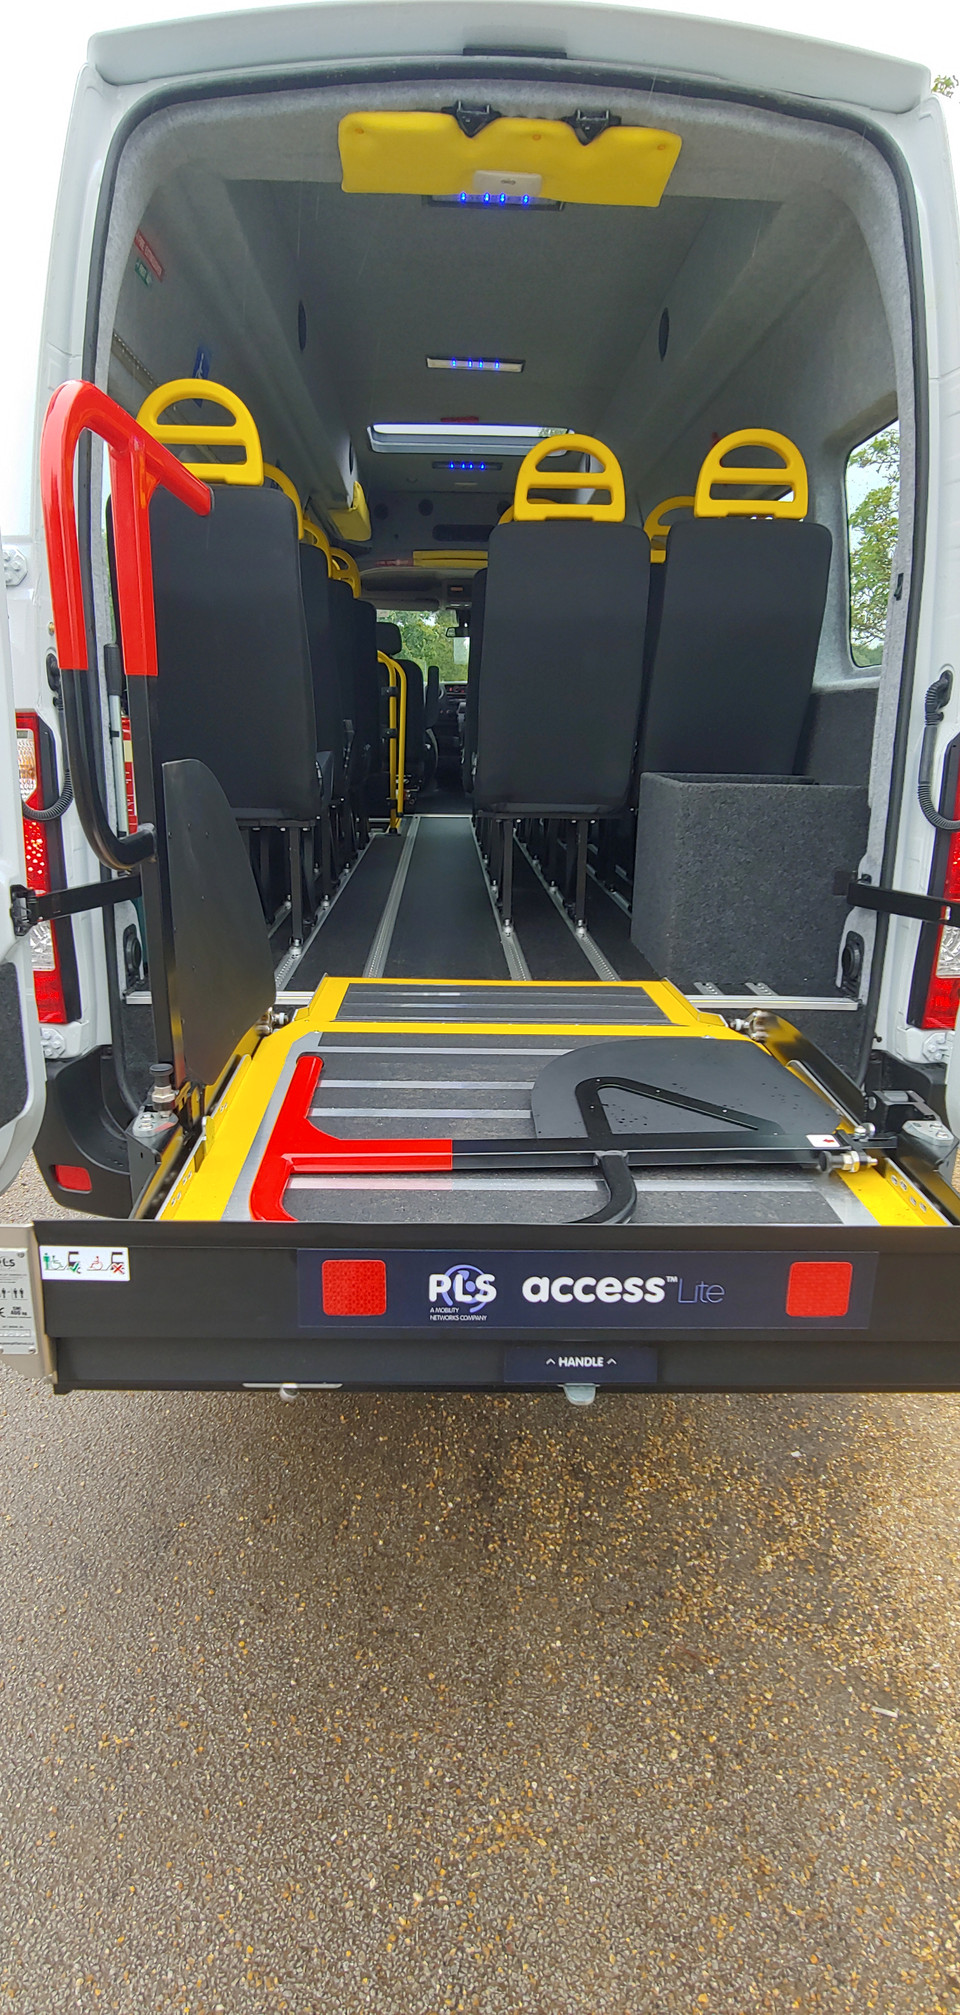 Tail lift fitted to Wheelchair Accessible Minibus conversion